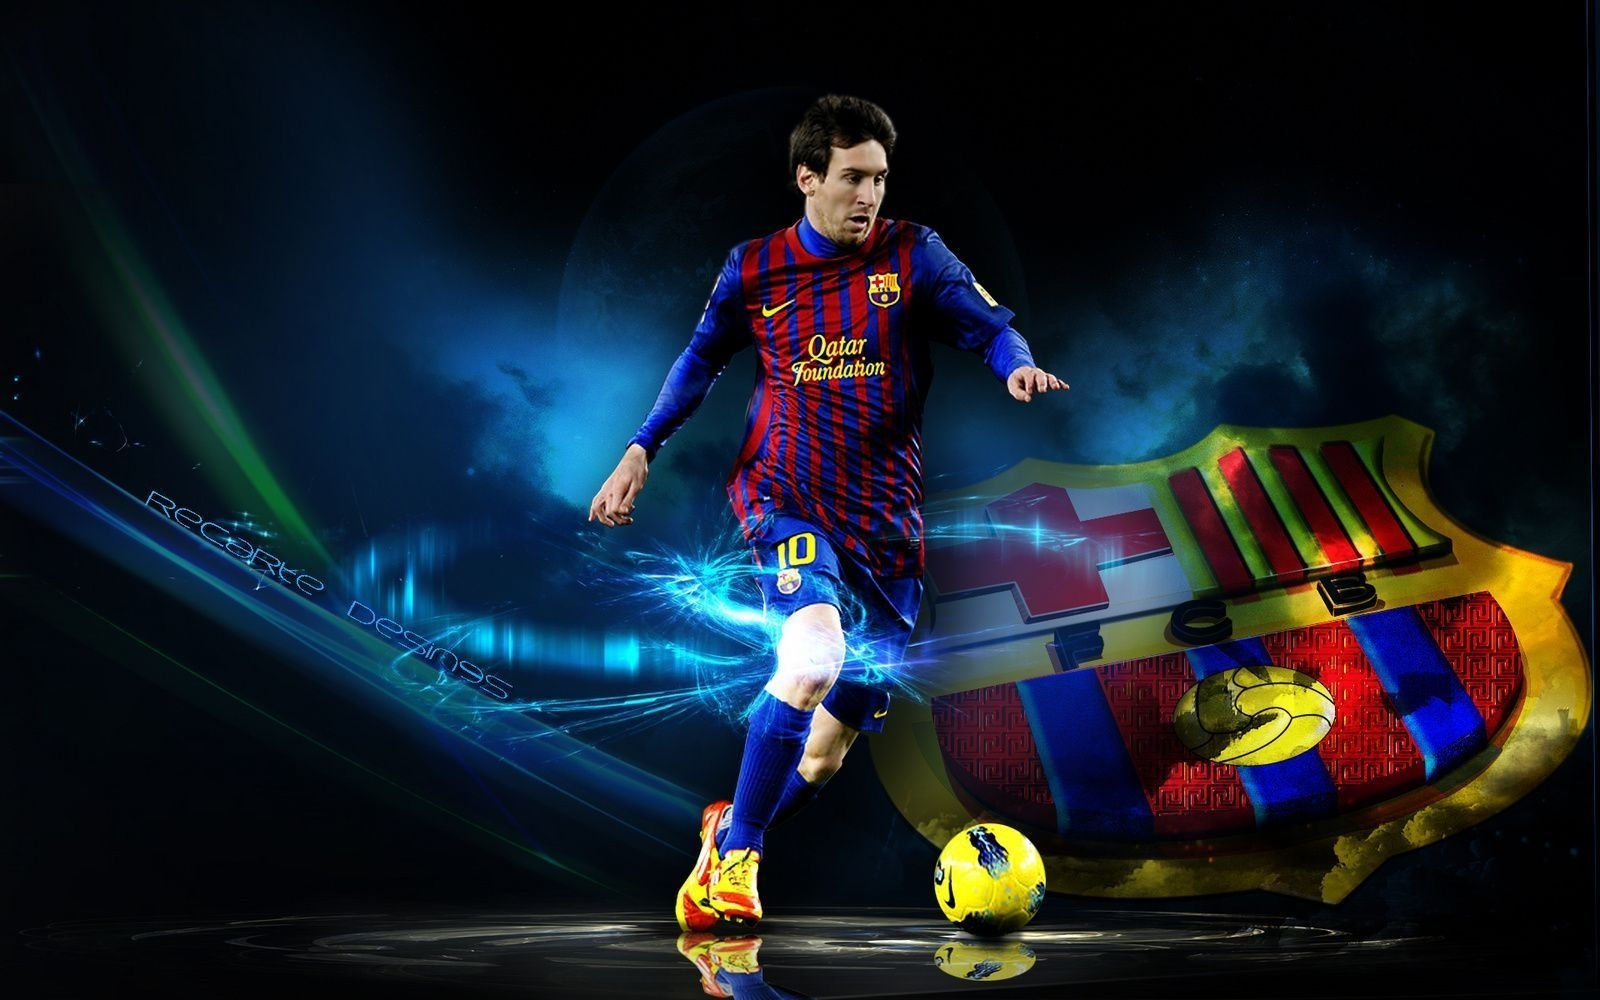 lionel messi 2015 1080p hd wallpapers - wallpaper cave | free